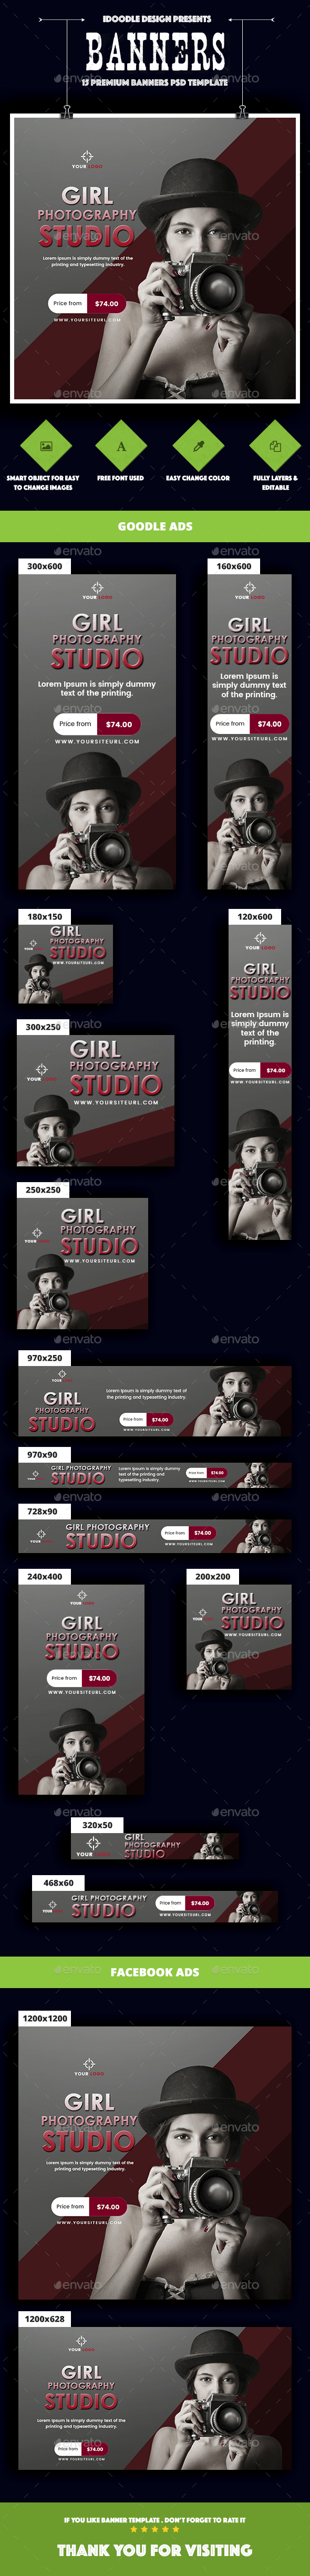 Girl Photography Banners Ads - Banners & Ads Web Elements